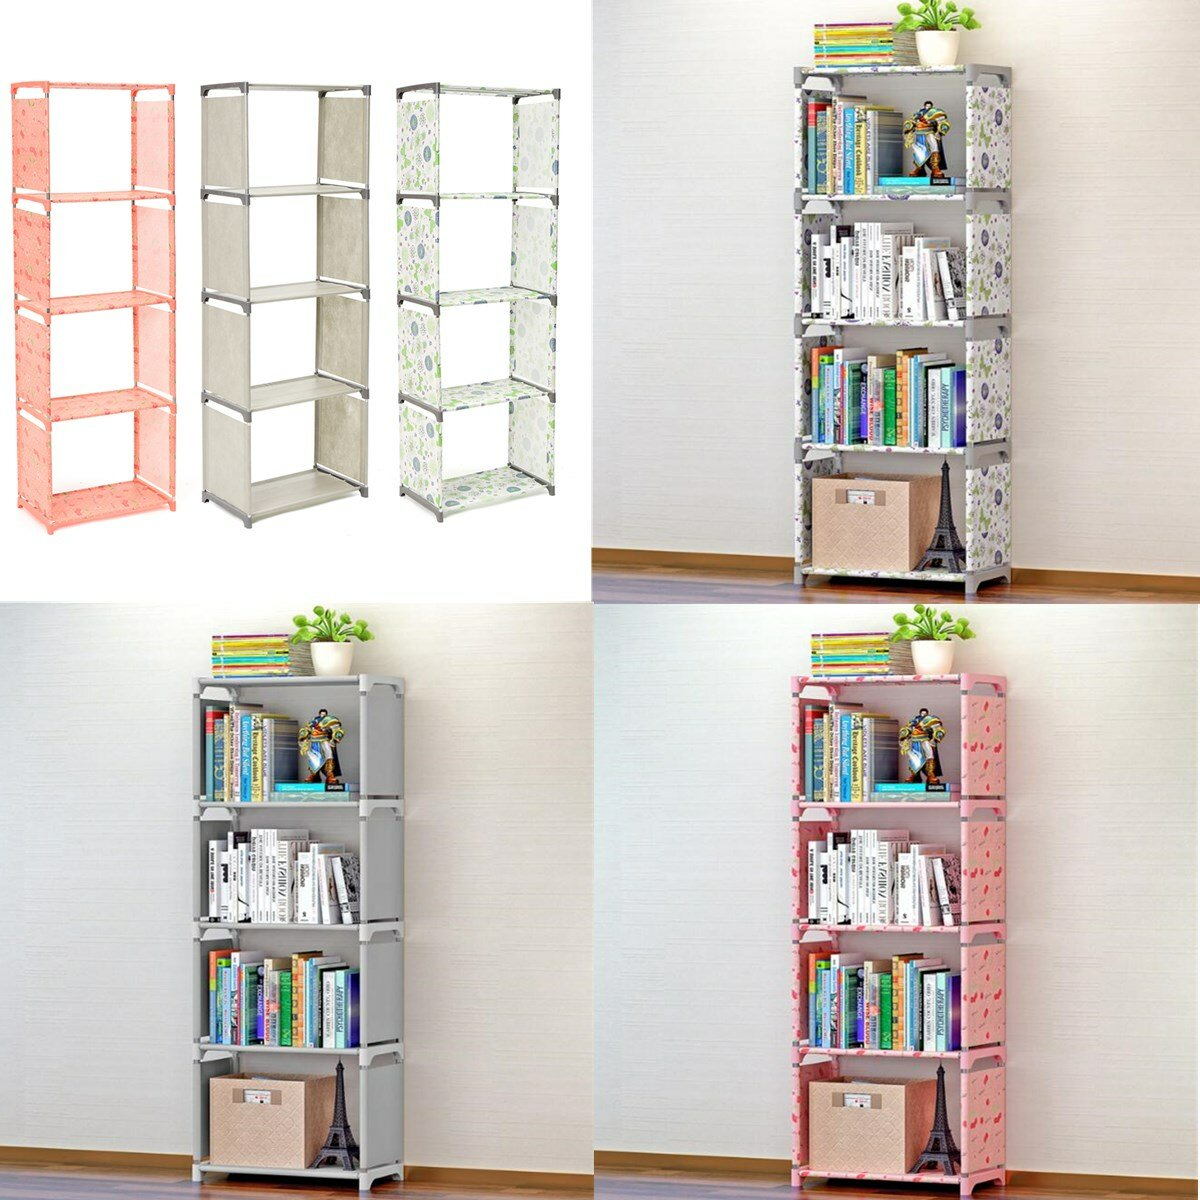 Bookshelf Function Shelving Unit Storage Rack Combined Decor Bookcase Home Books